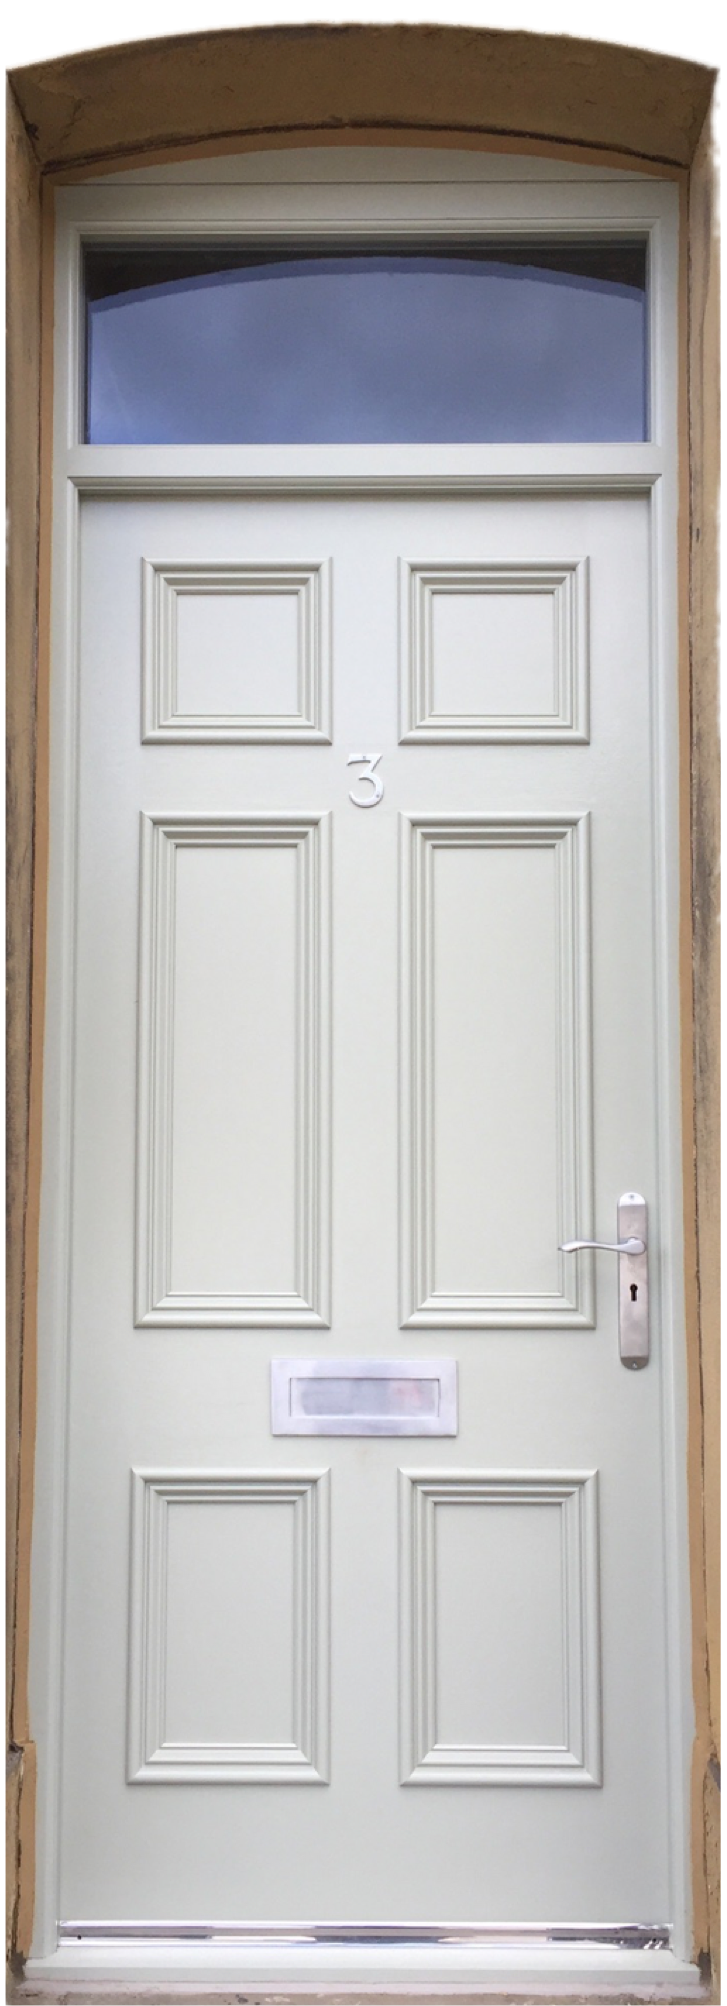 Bespoke timber door by Collins and Hall